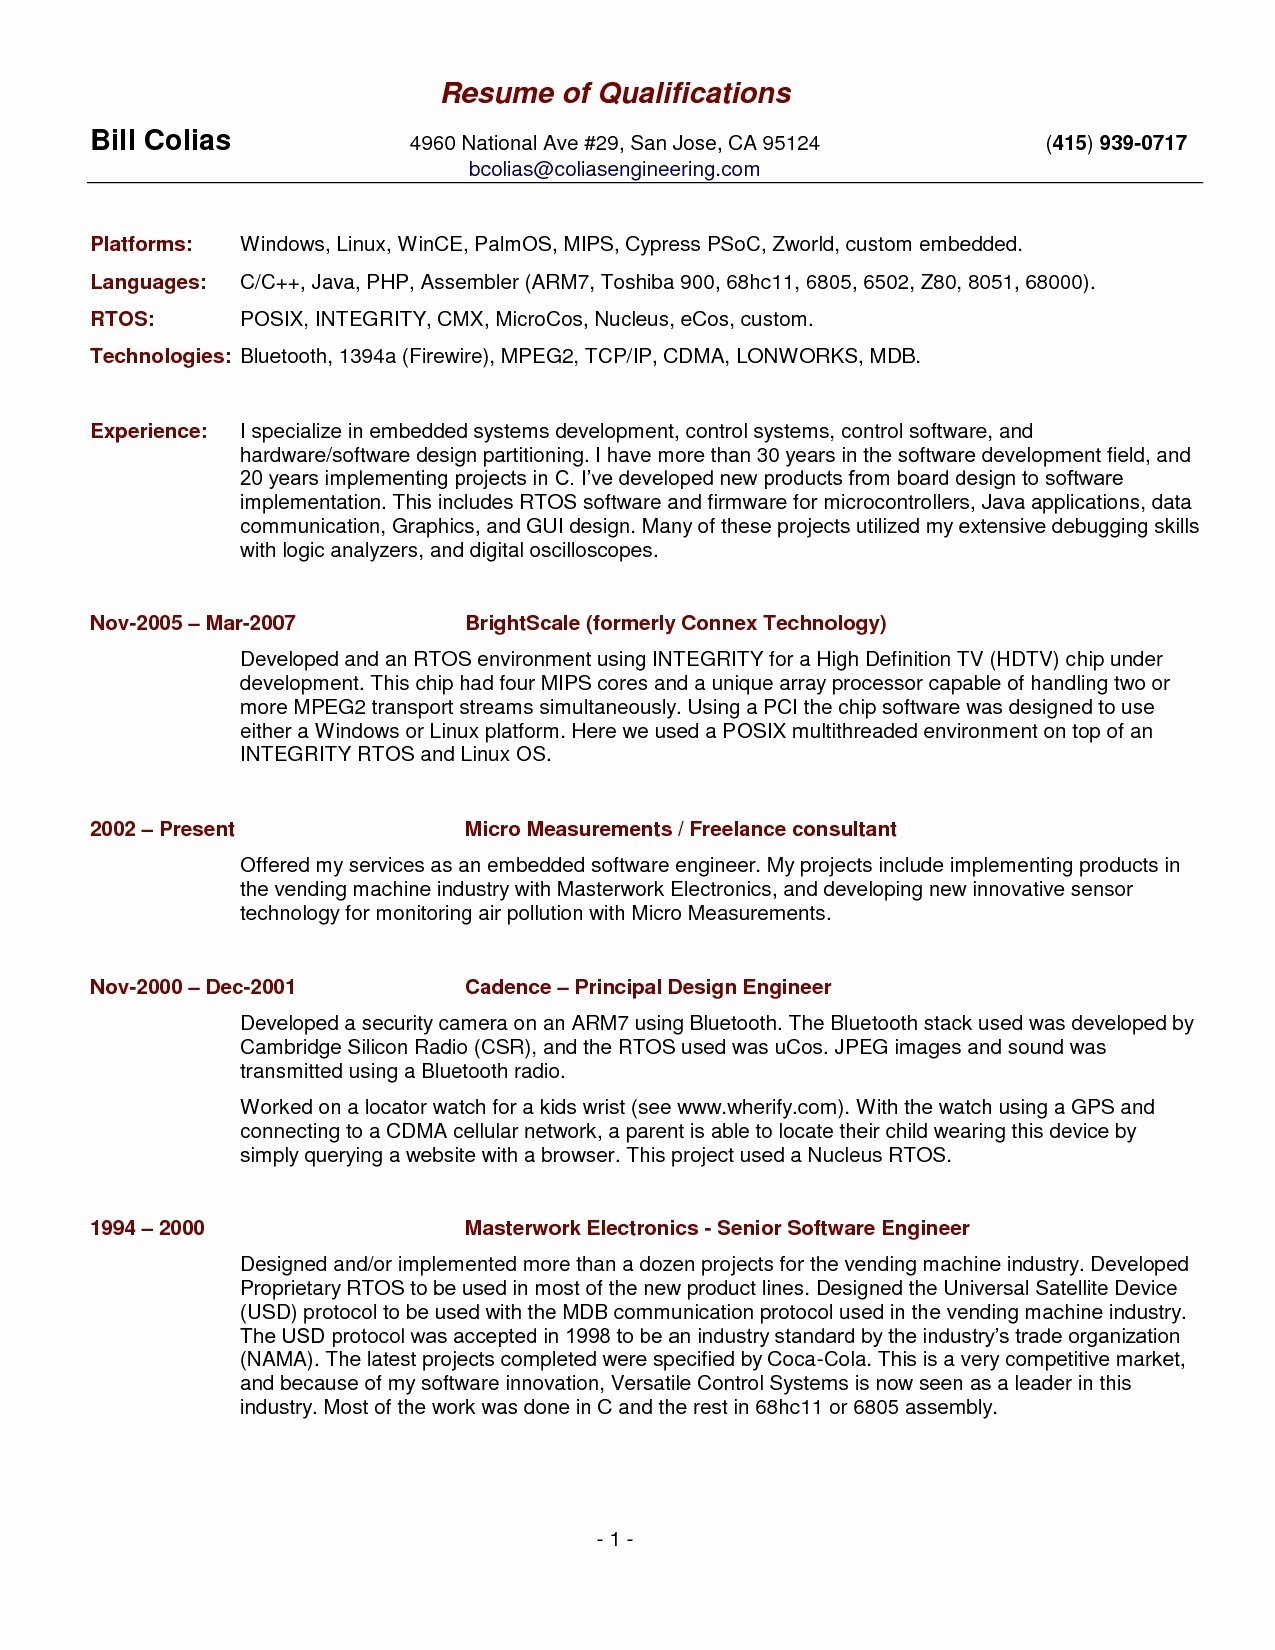 Need A Resume - I Need A Resume Fast Luxury Fresh Pr Resume Template Elegant